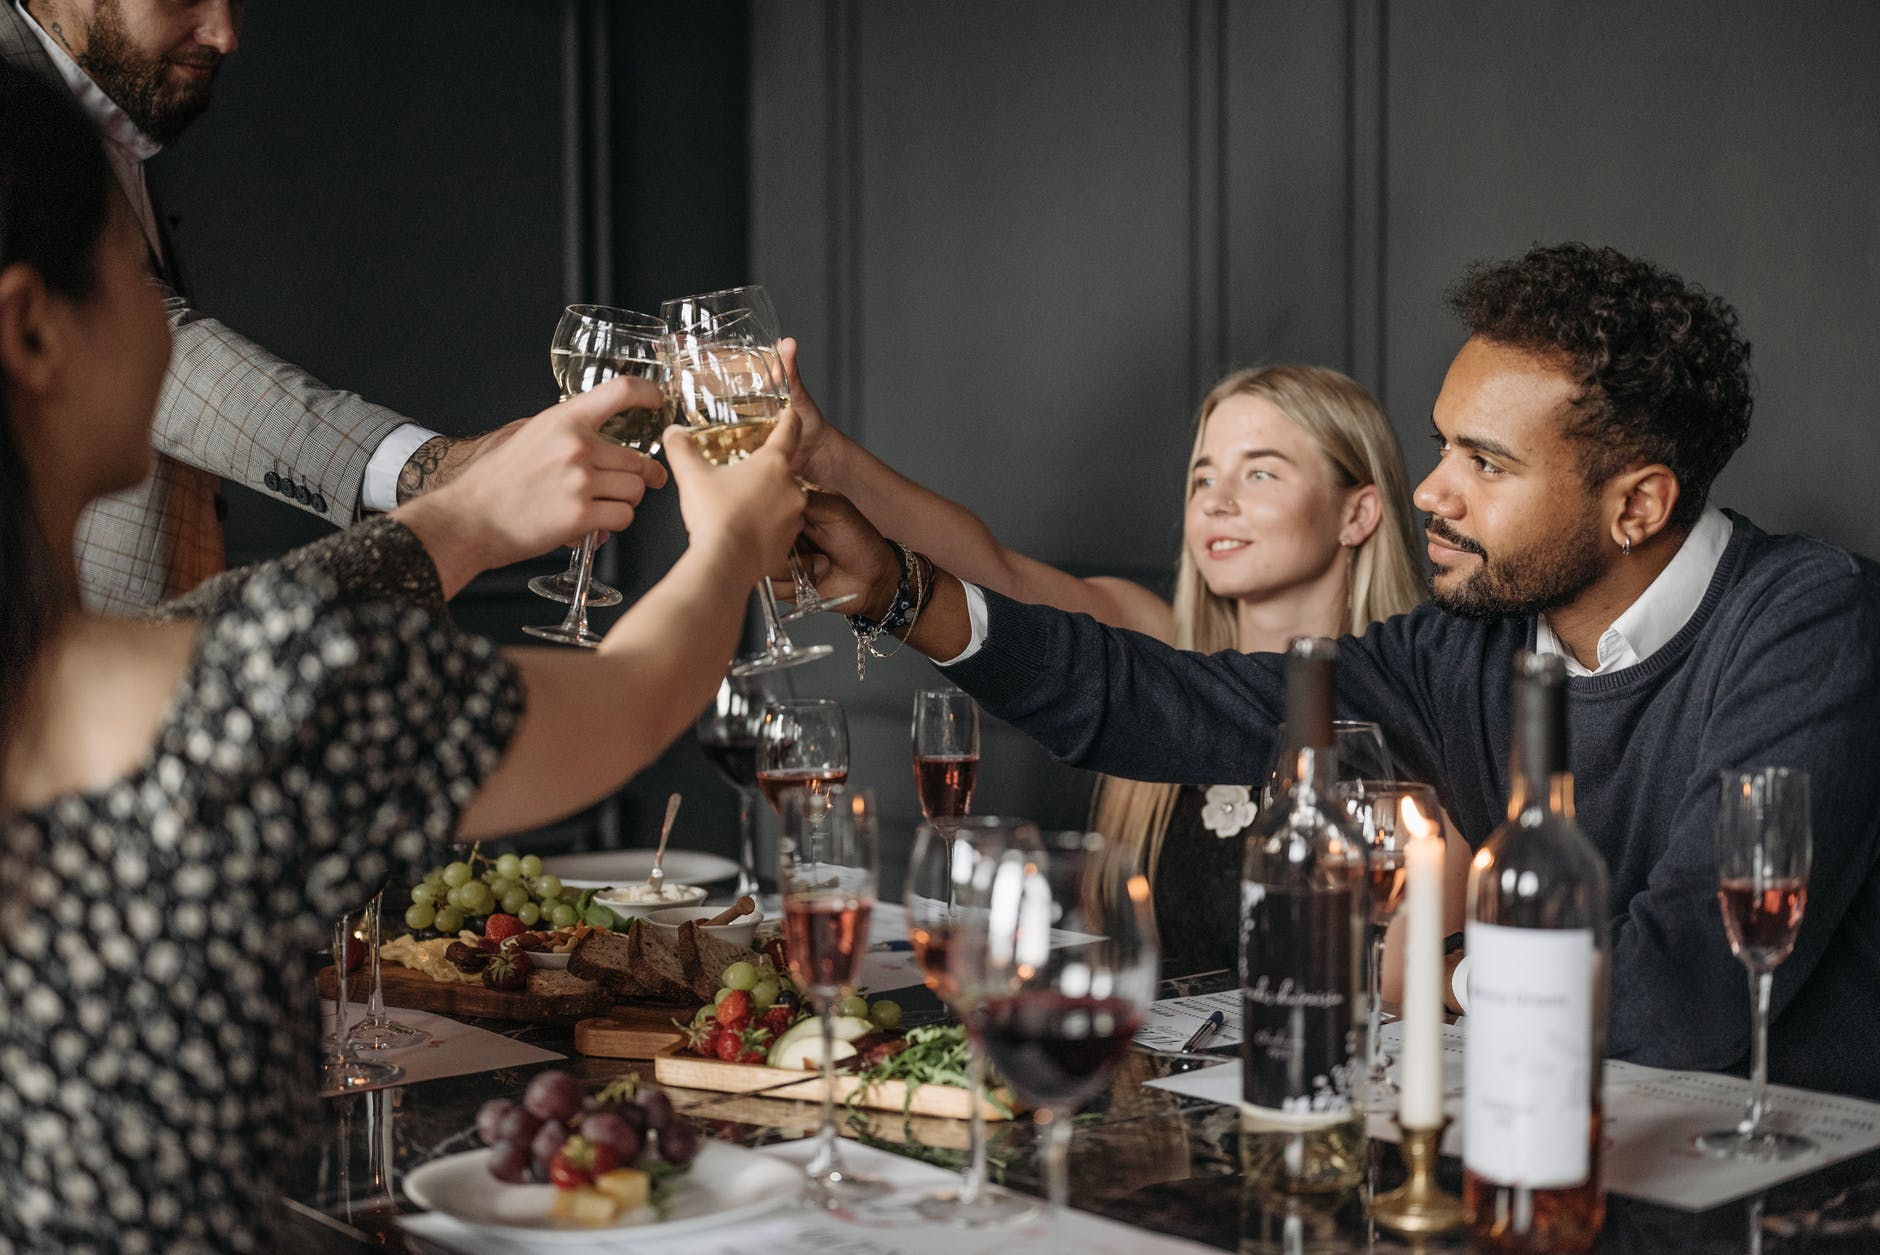 people holding a glass of wine at the table